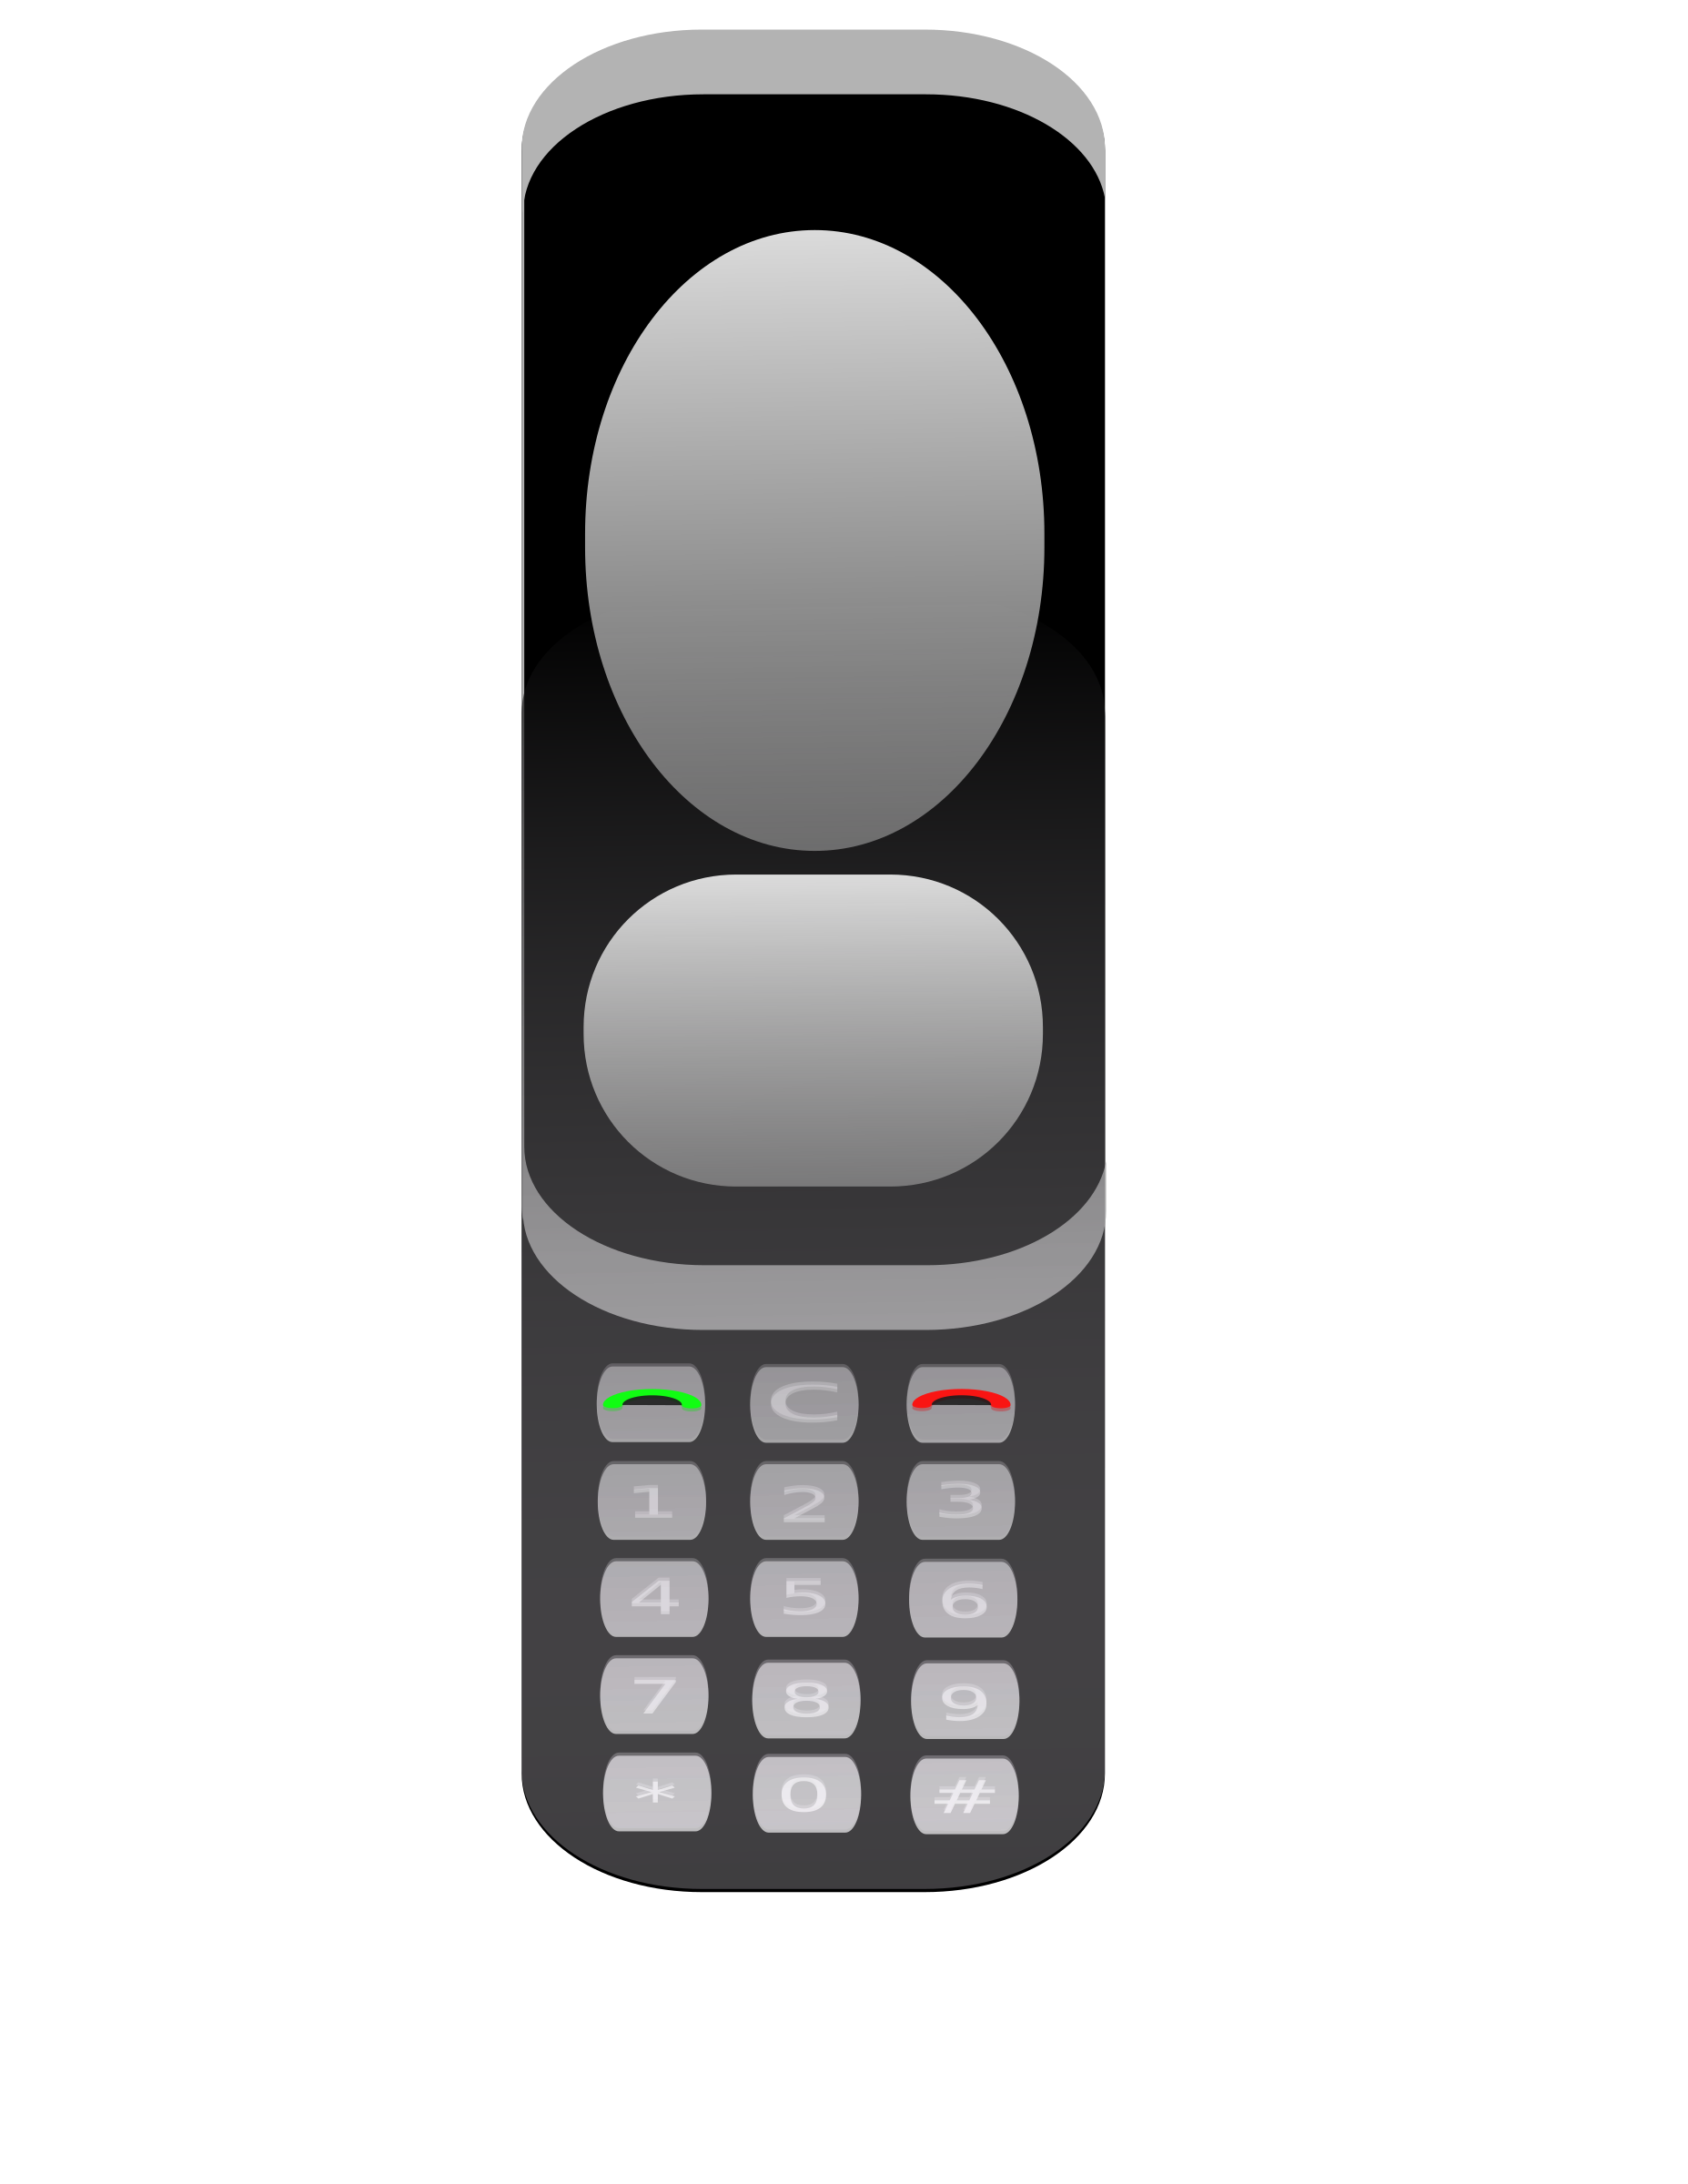 1855x2400 Old Cellphone Vector Clipart Graphic Image